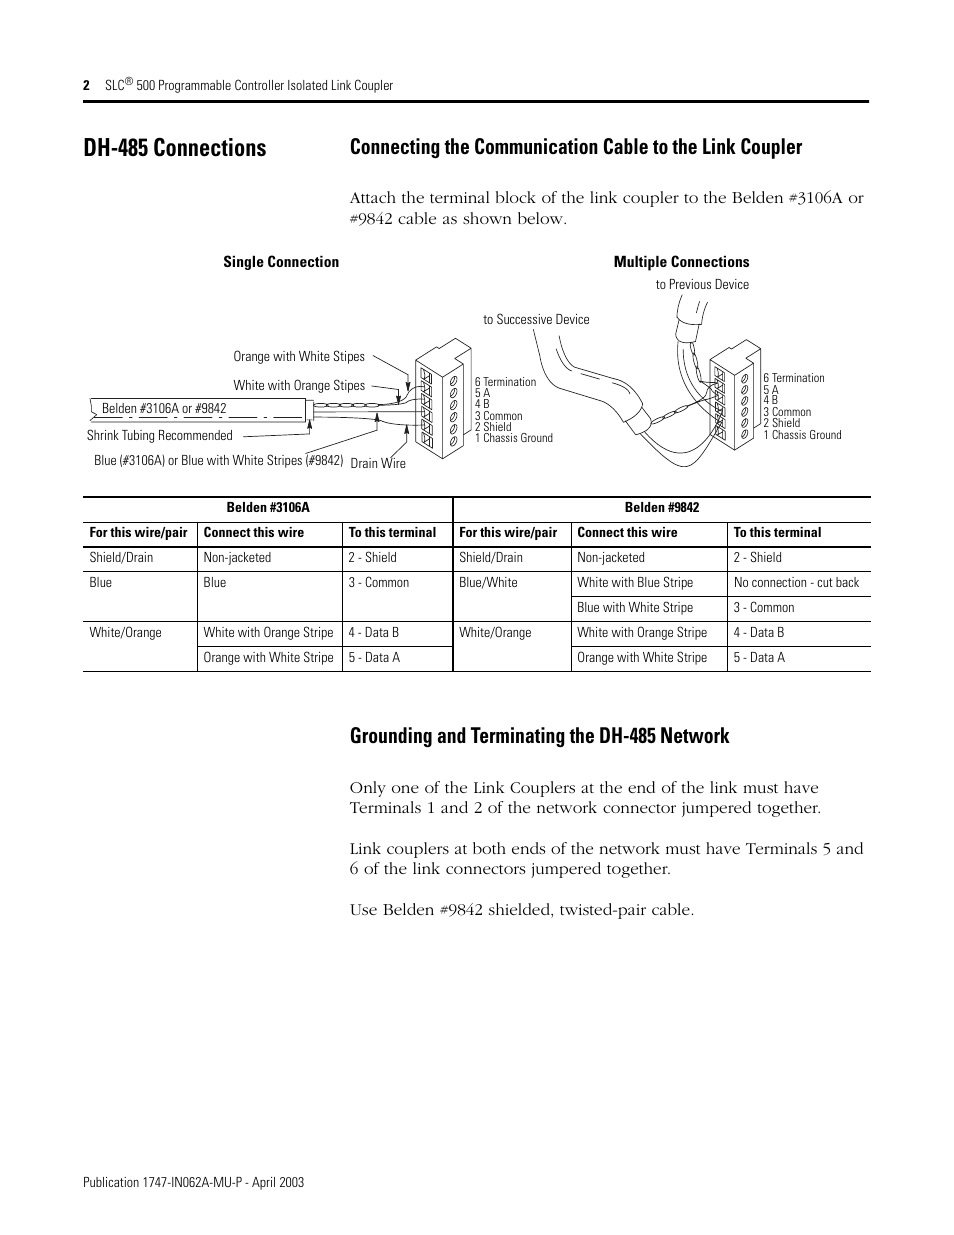 dh 485 connections grounding and terminating the dh 485. Black Bedroom Furniture Sets. Home Design Ideas